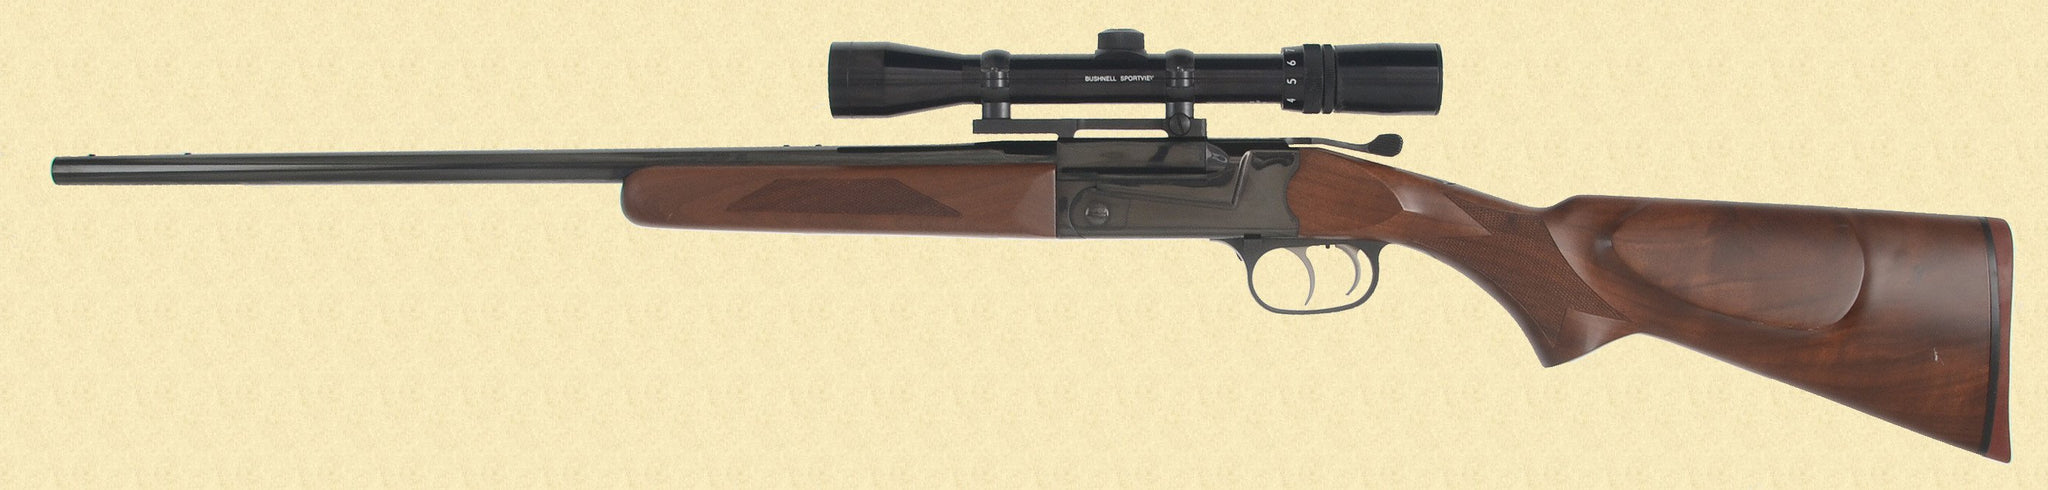 THOMPSON CENTER ARMS HUNTER DELUXE